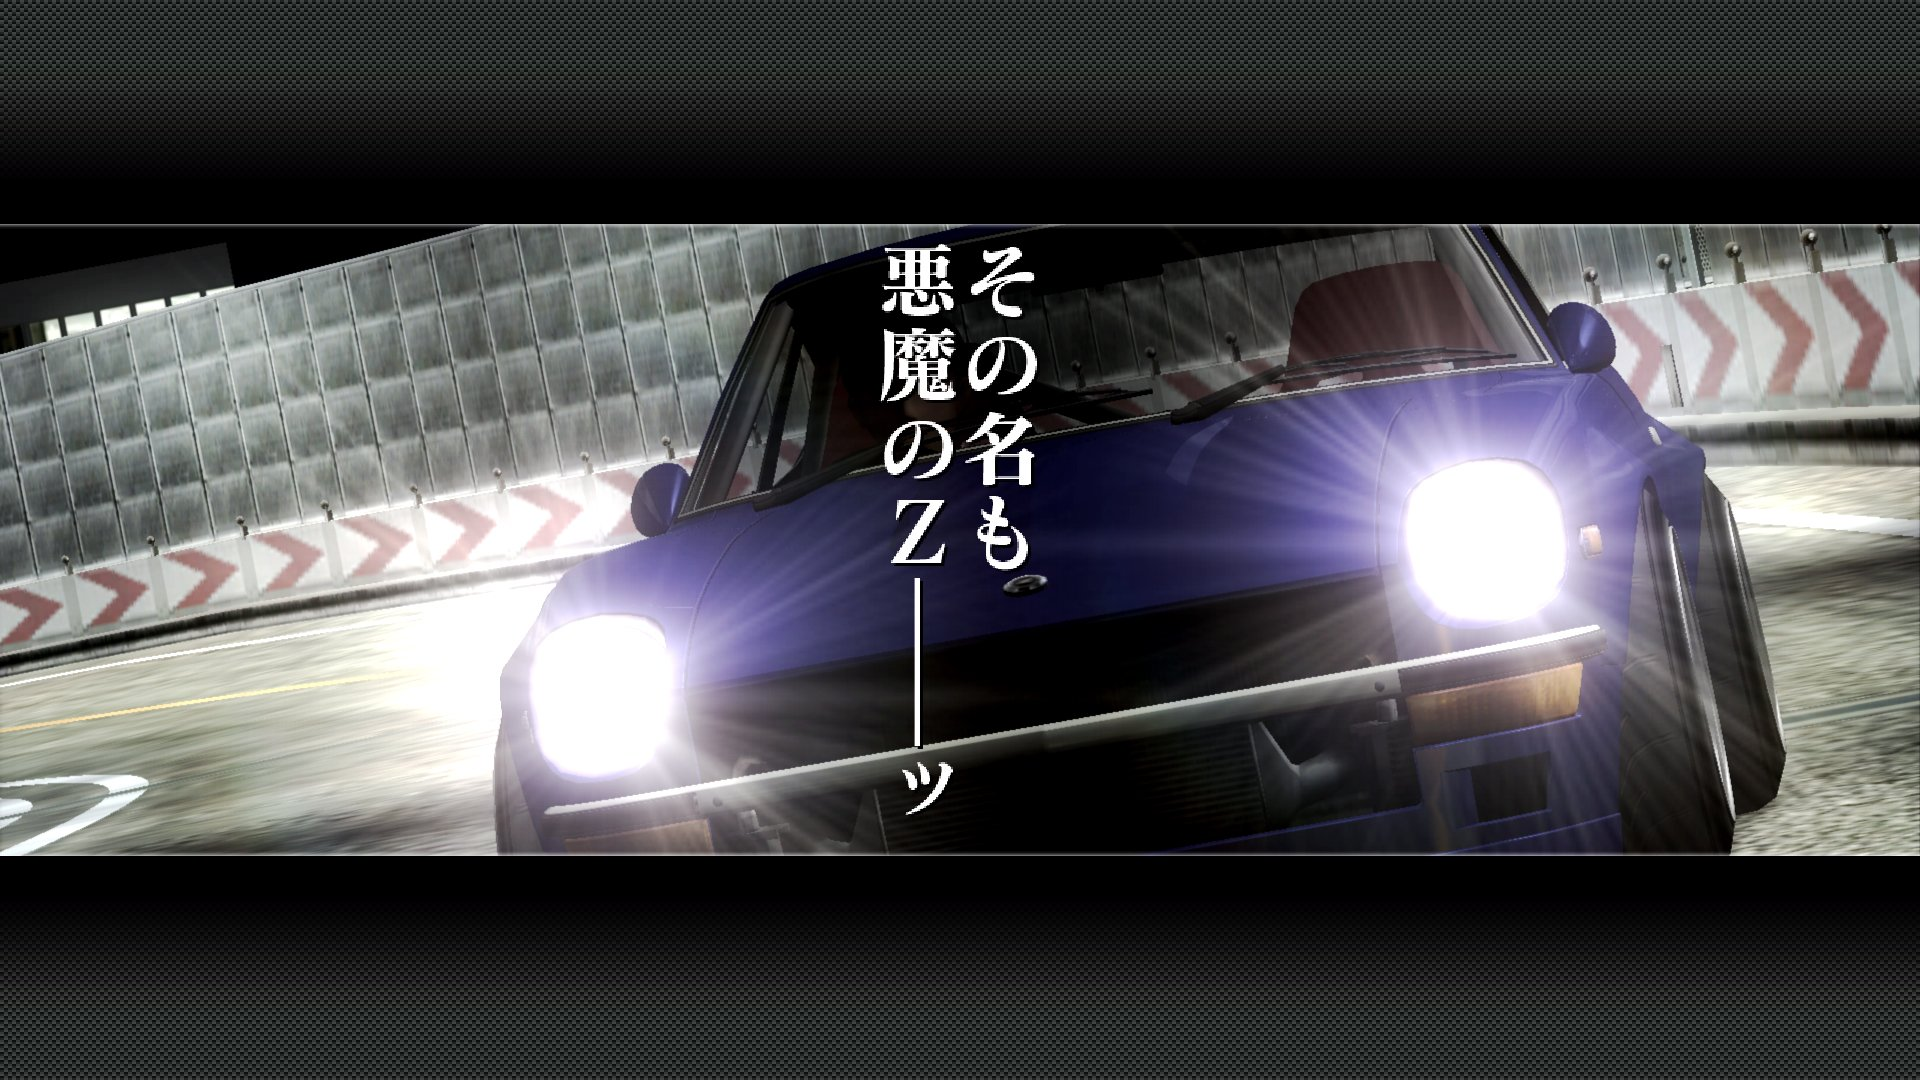 Wangan Midnight (PlayStation3 the Best) [Japan Import] by GENKI (Image #3)